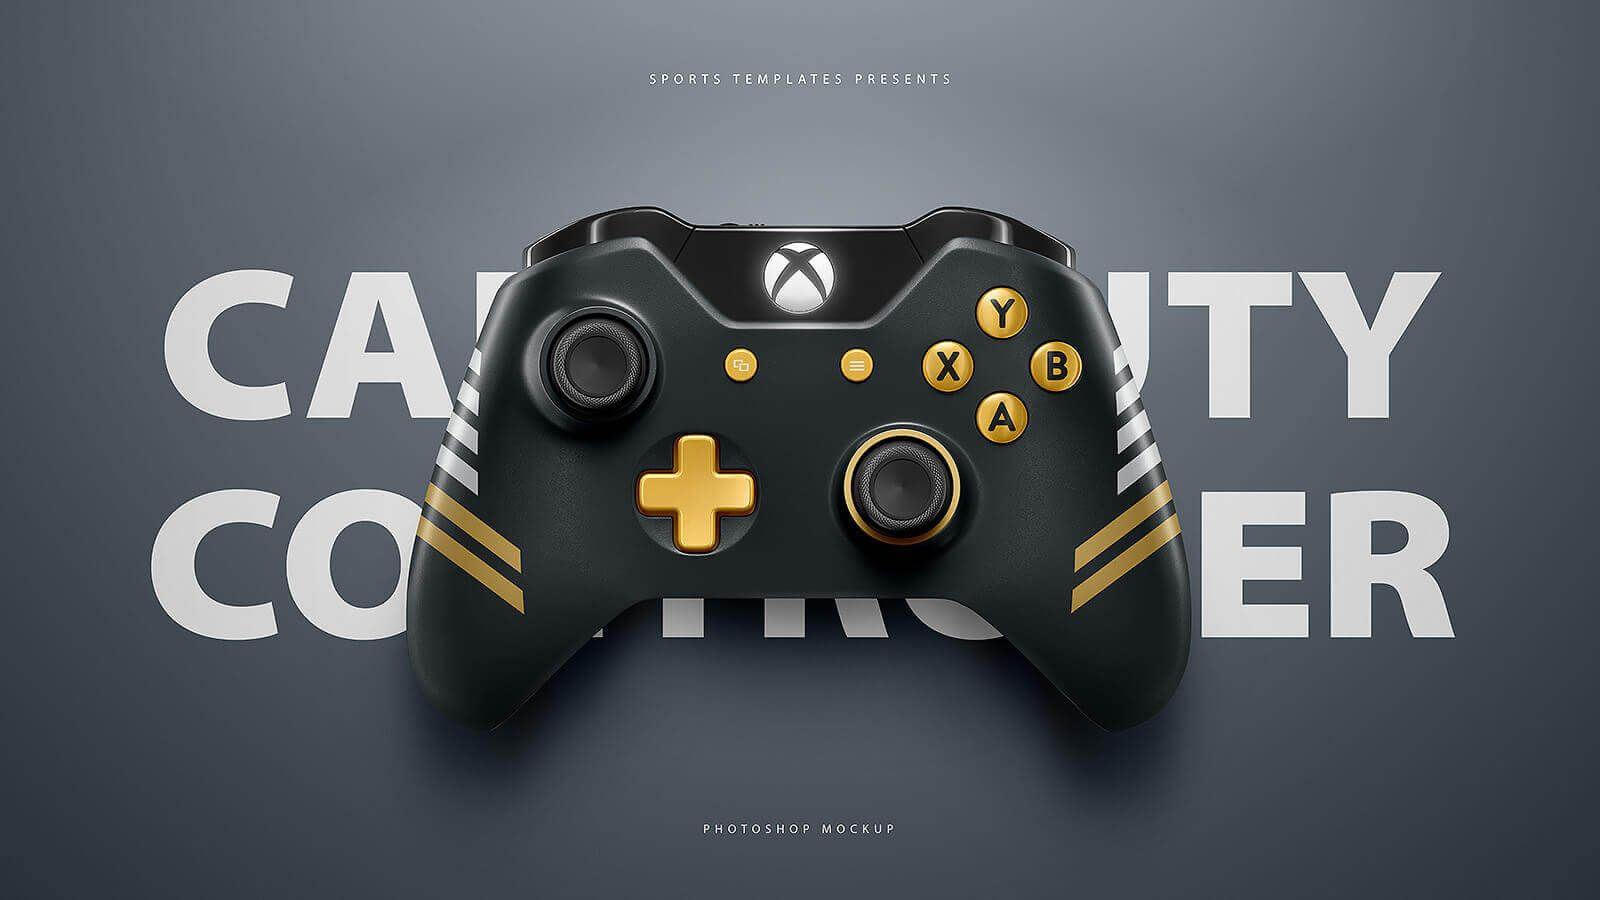 Esports ps4 xbox controllers mockup templates sports